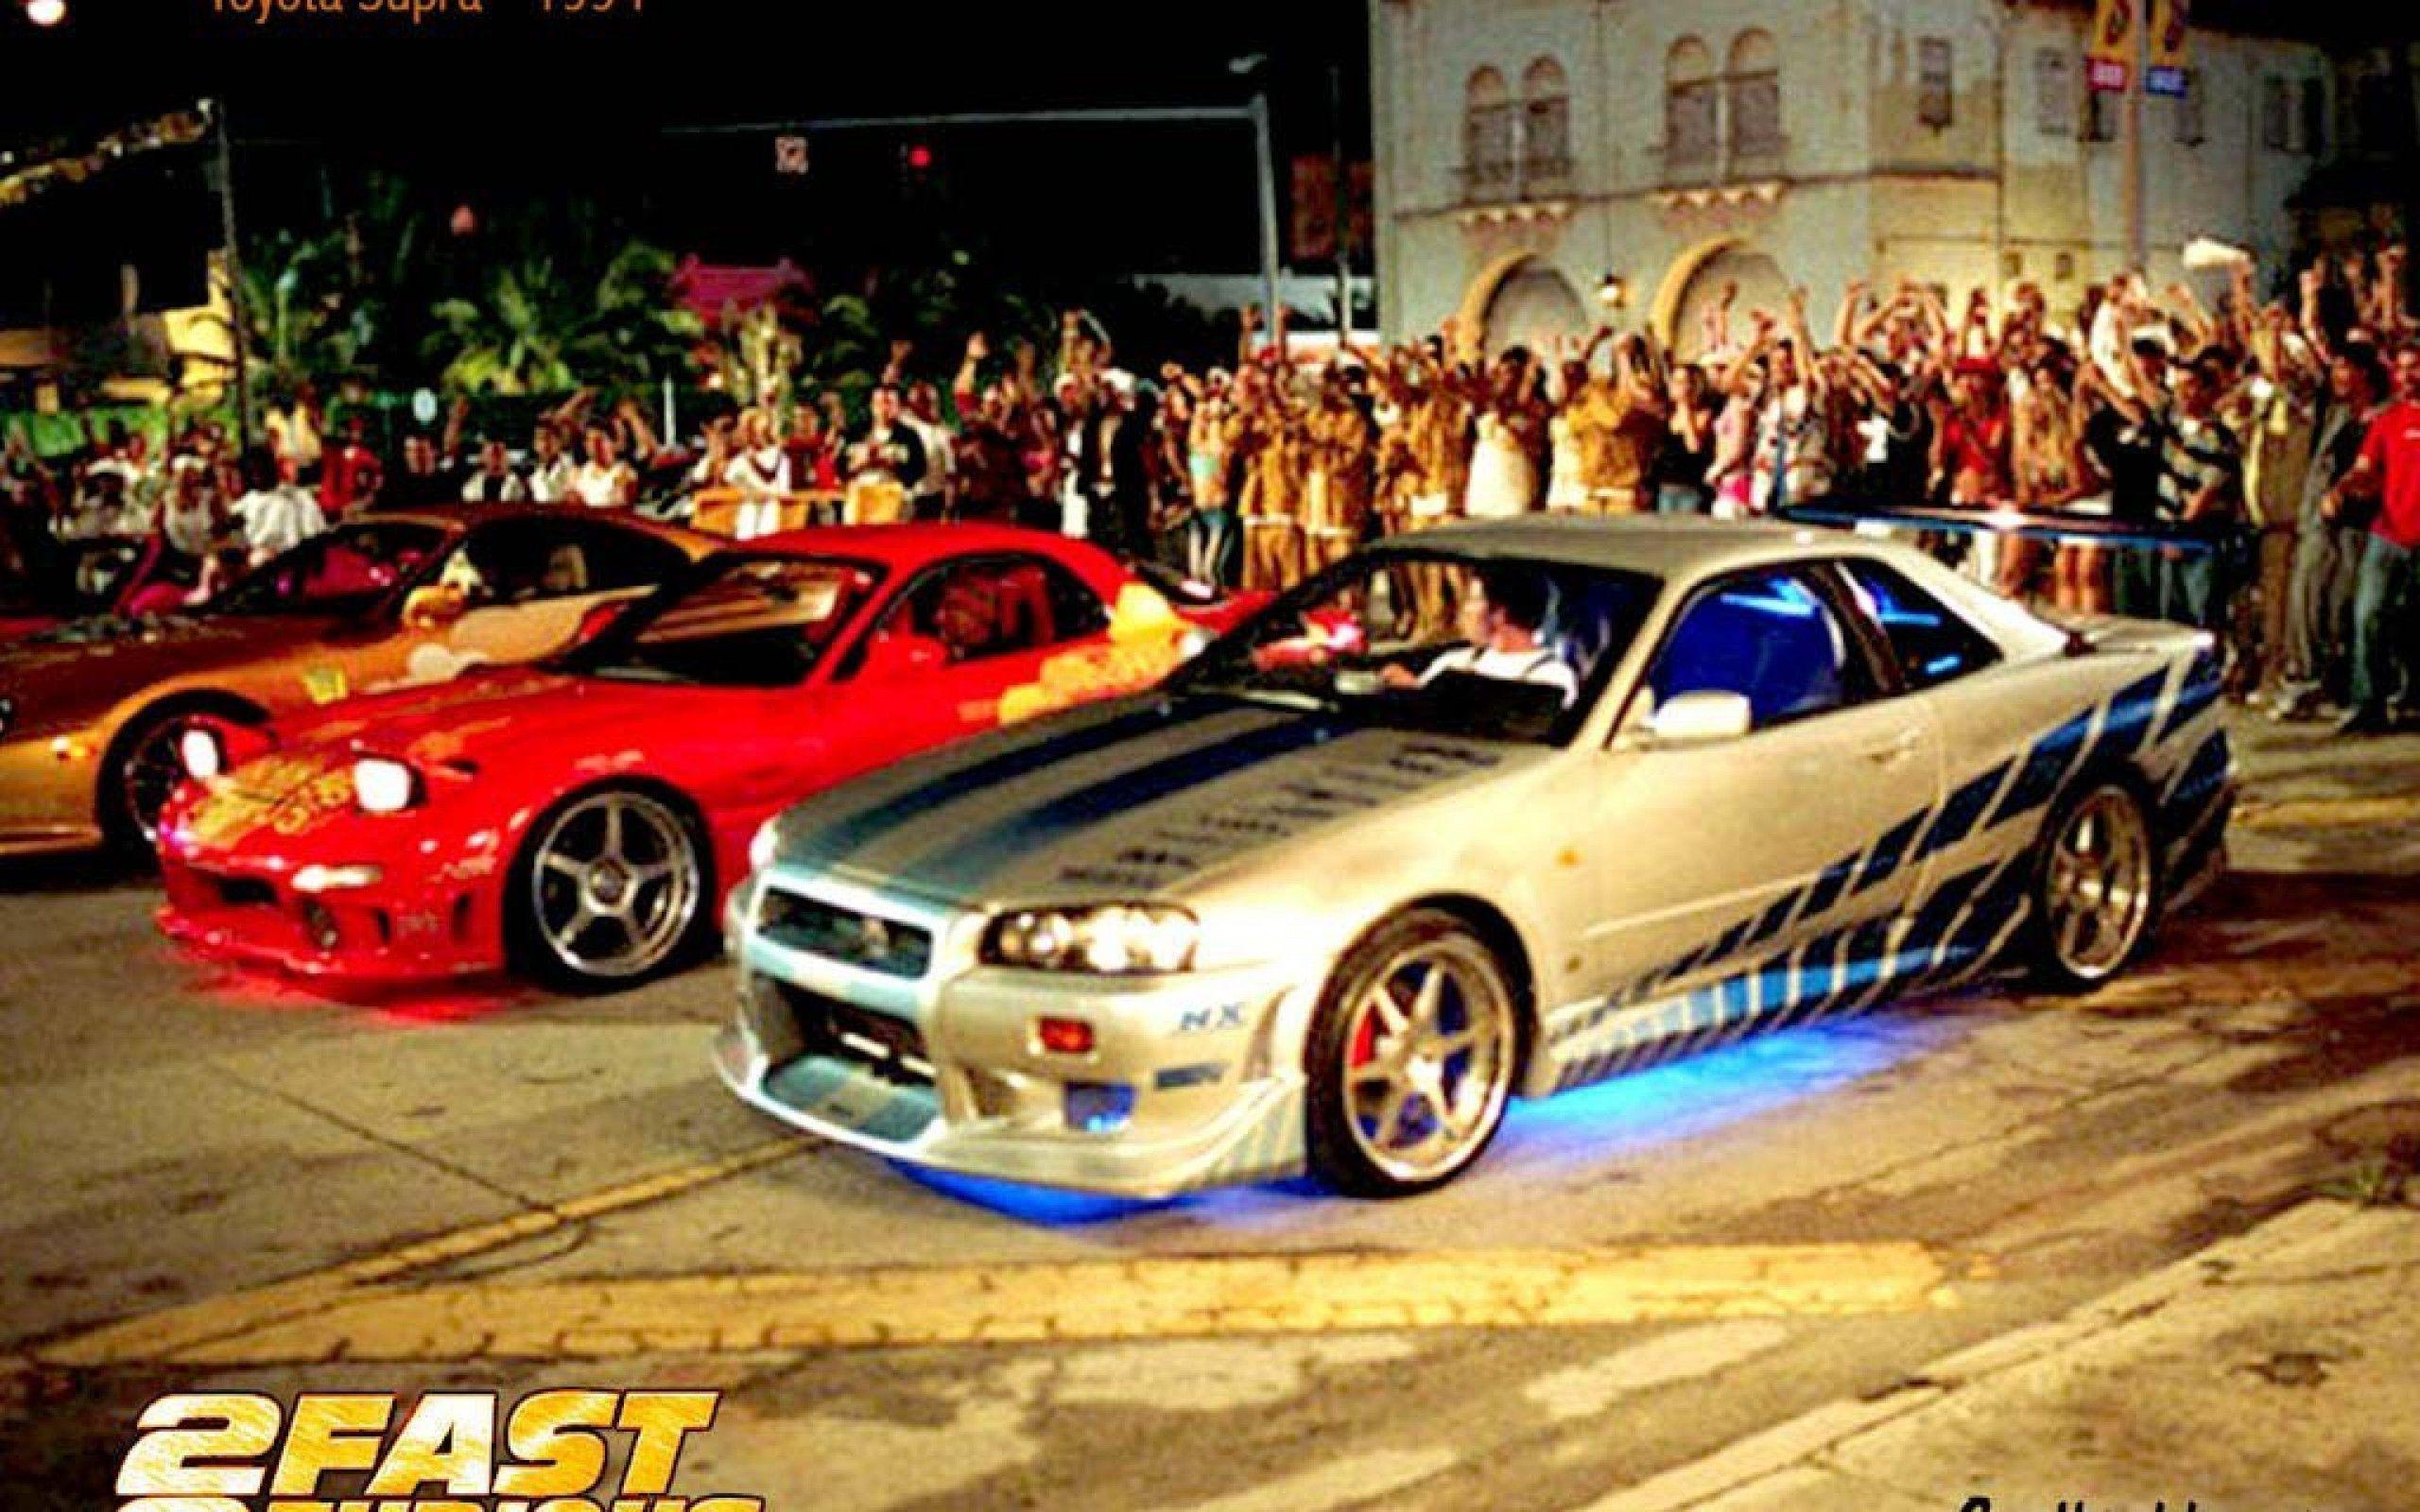 Fast And Furious Hd Wallpaper Background: Fast And Furious Wallpapers